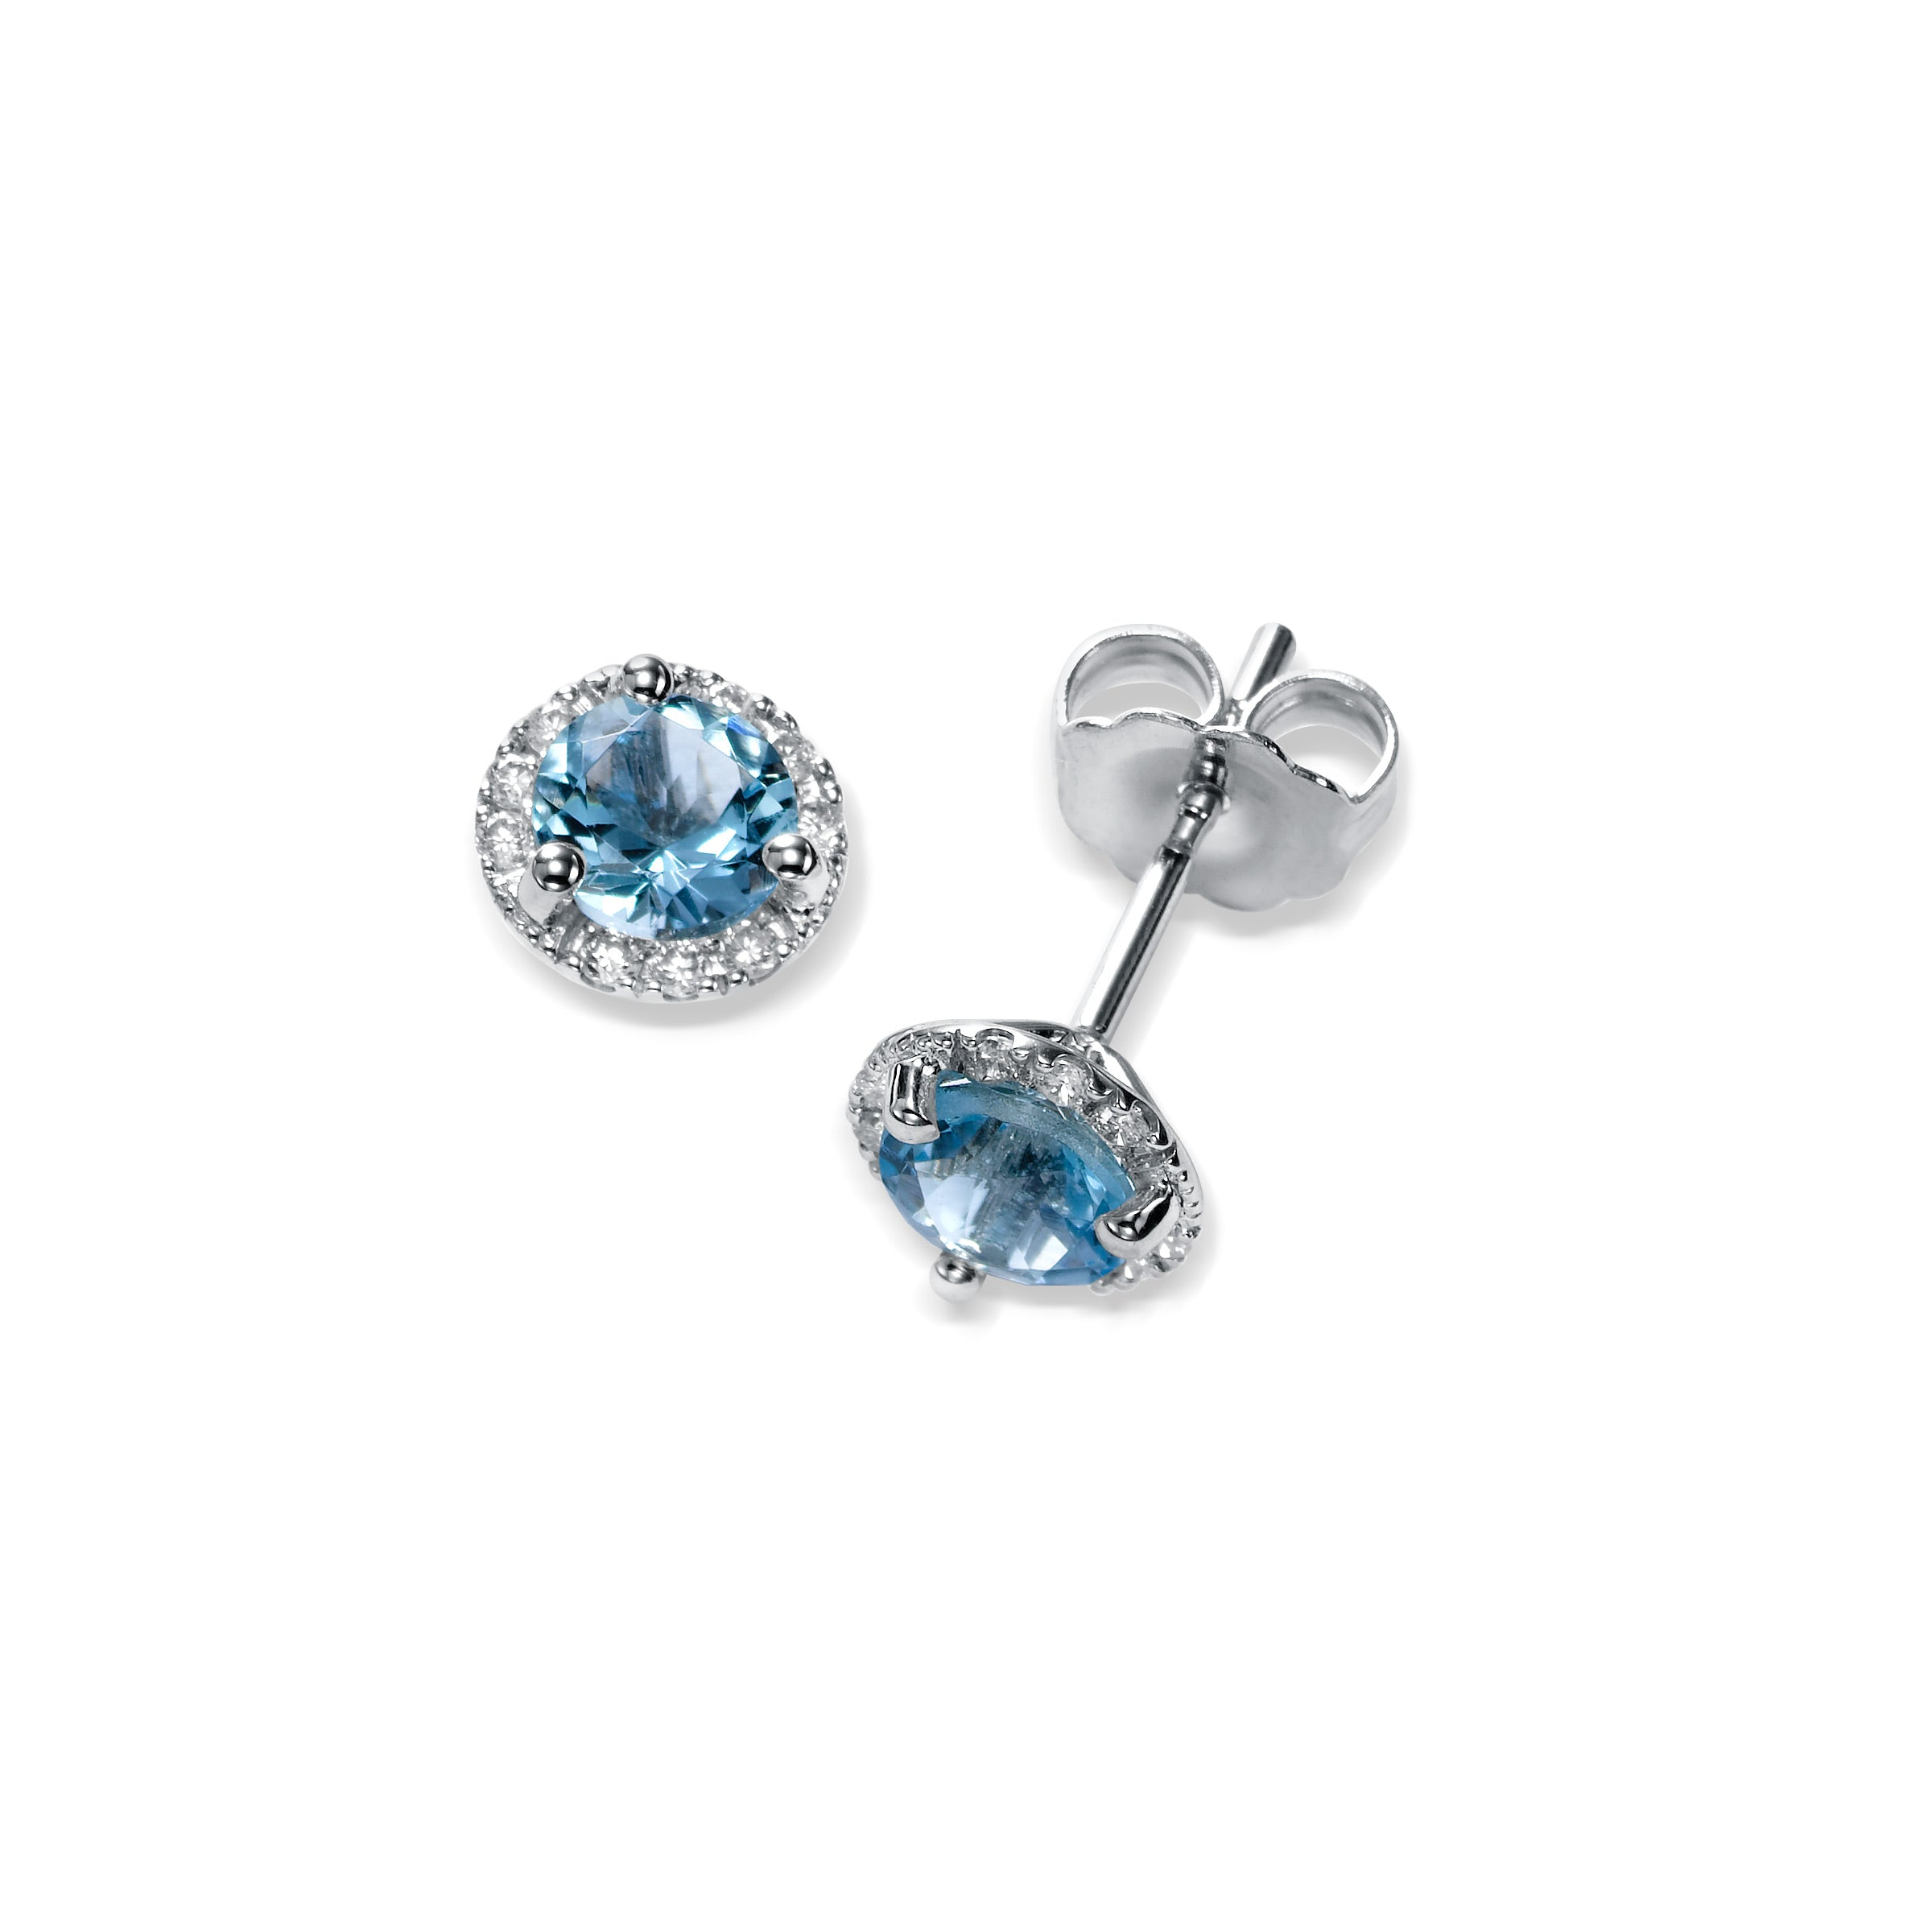 Round Aquamarine and Diamond Stud Earrings, 14K White Gold